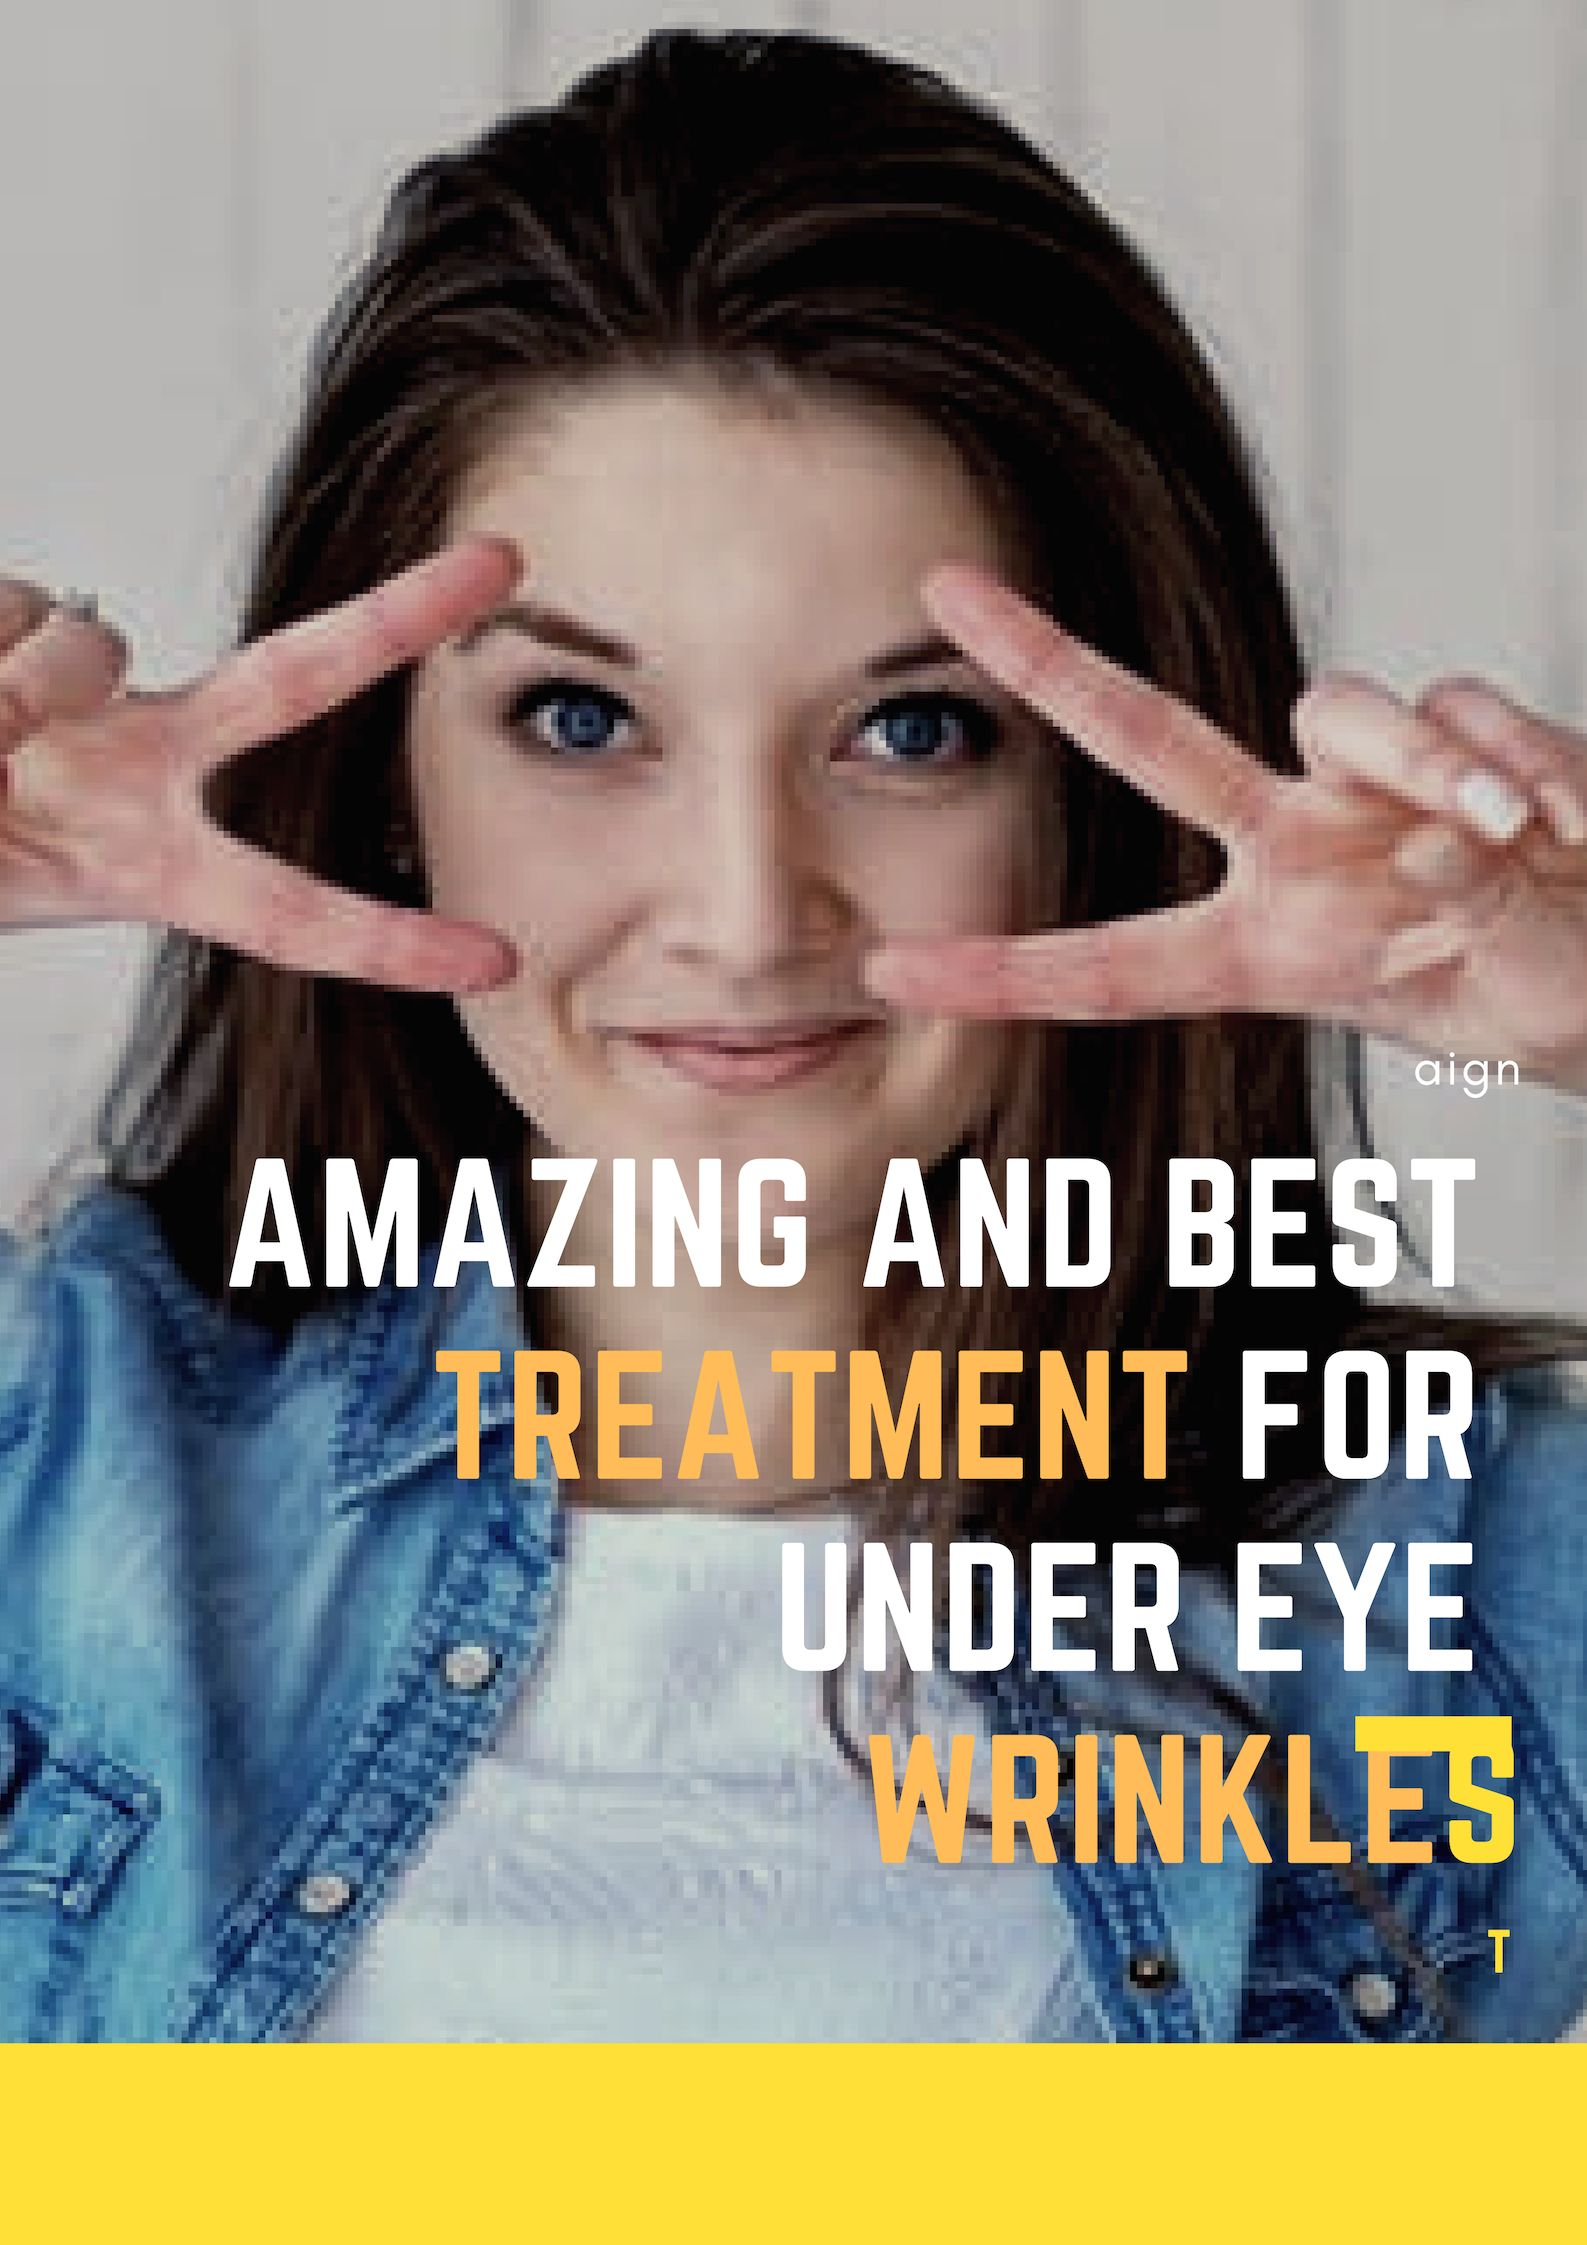 Pin about Under eye wrinkles, Eye wrinkle and Under eye